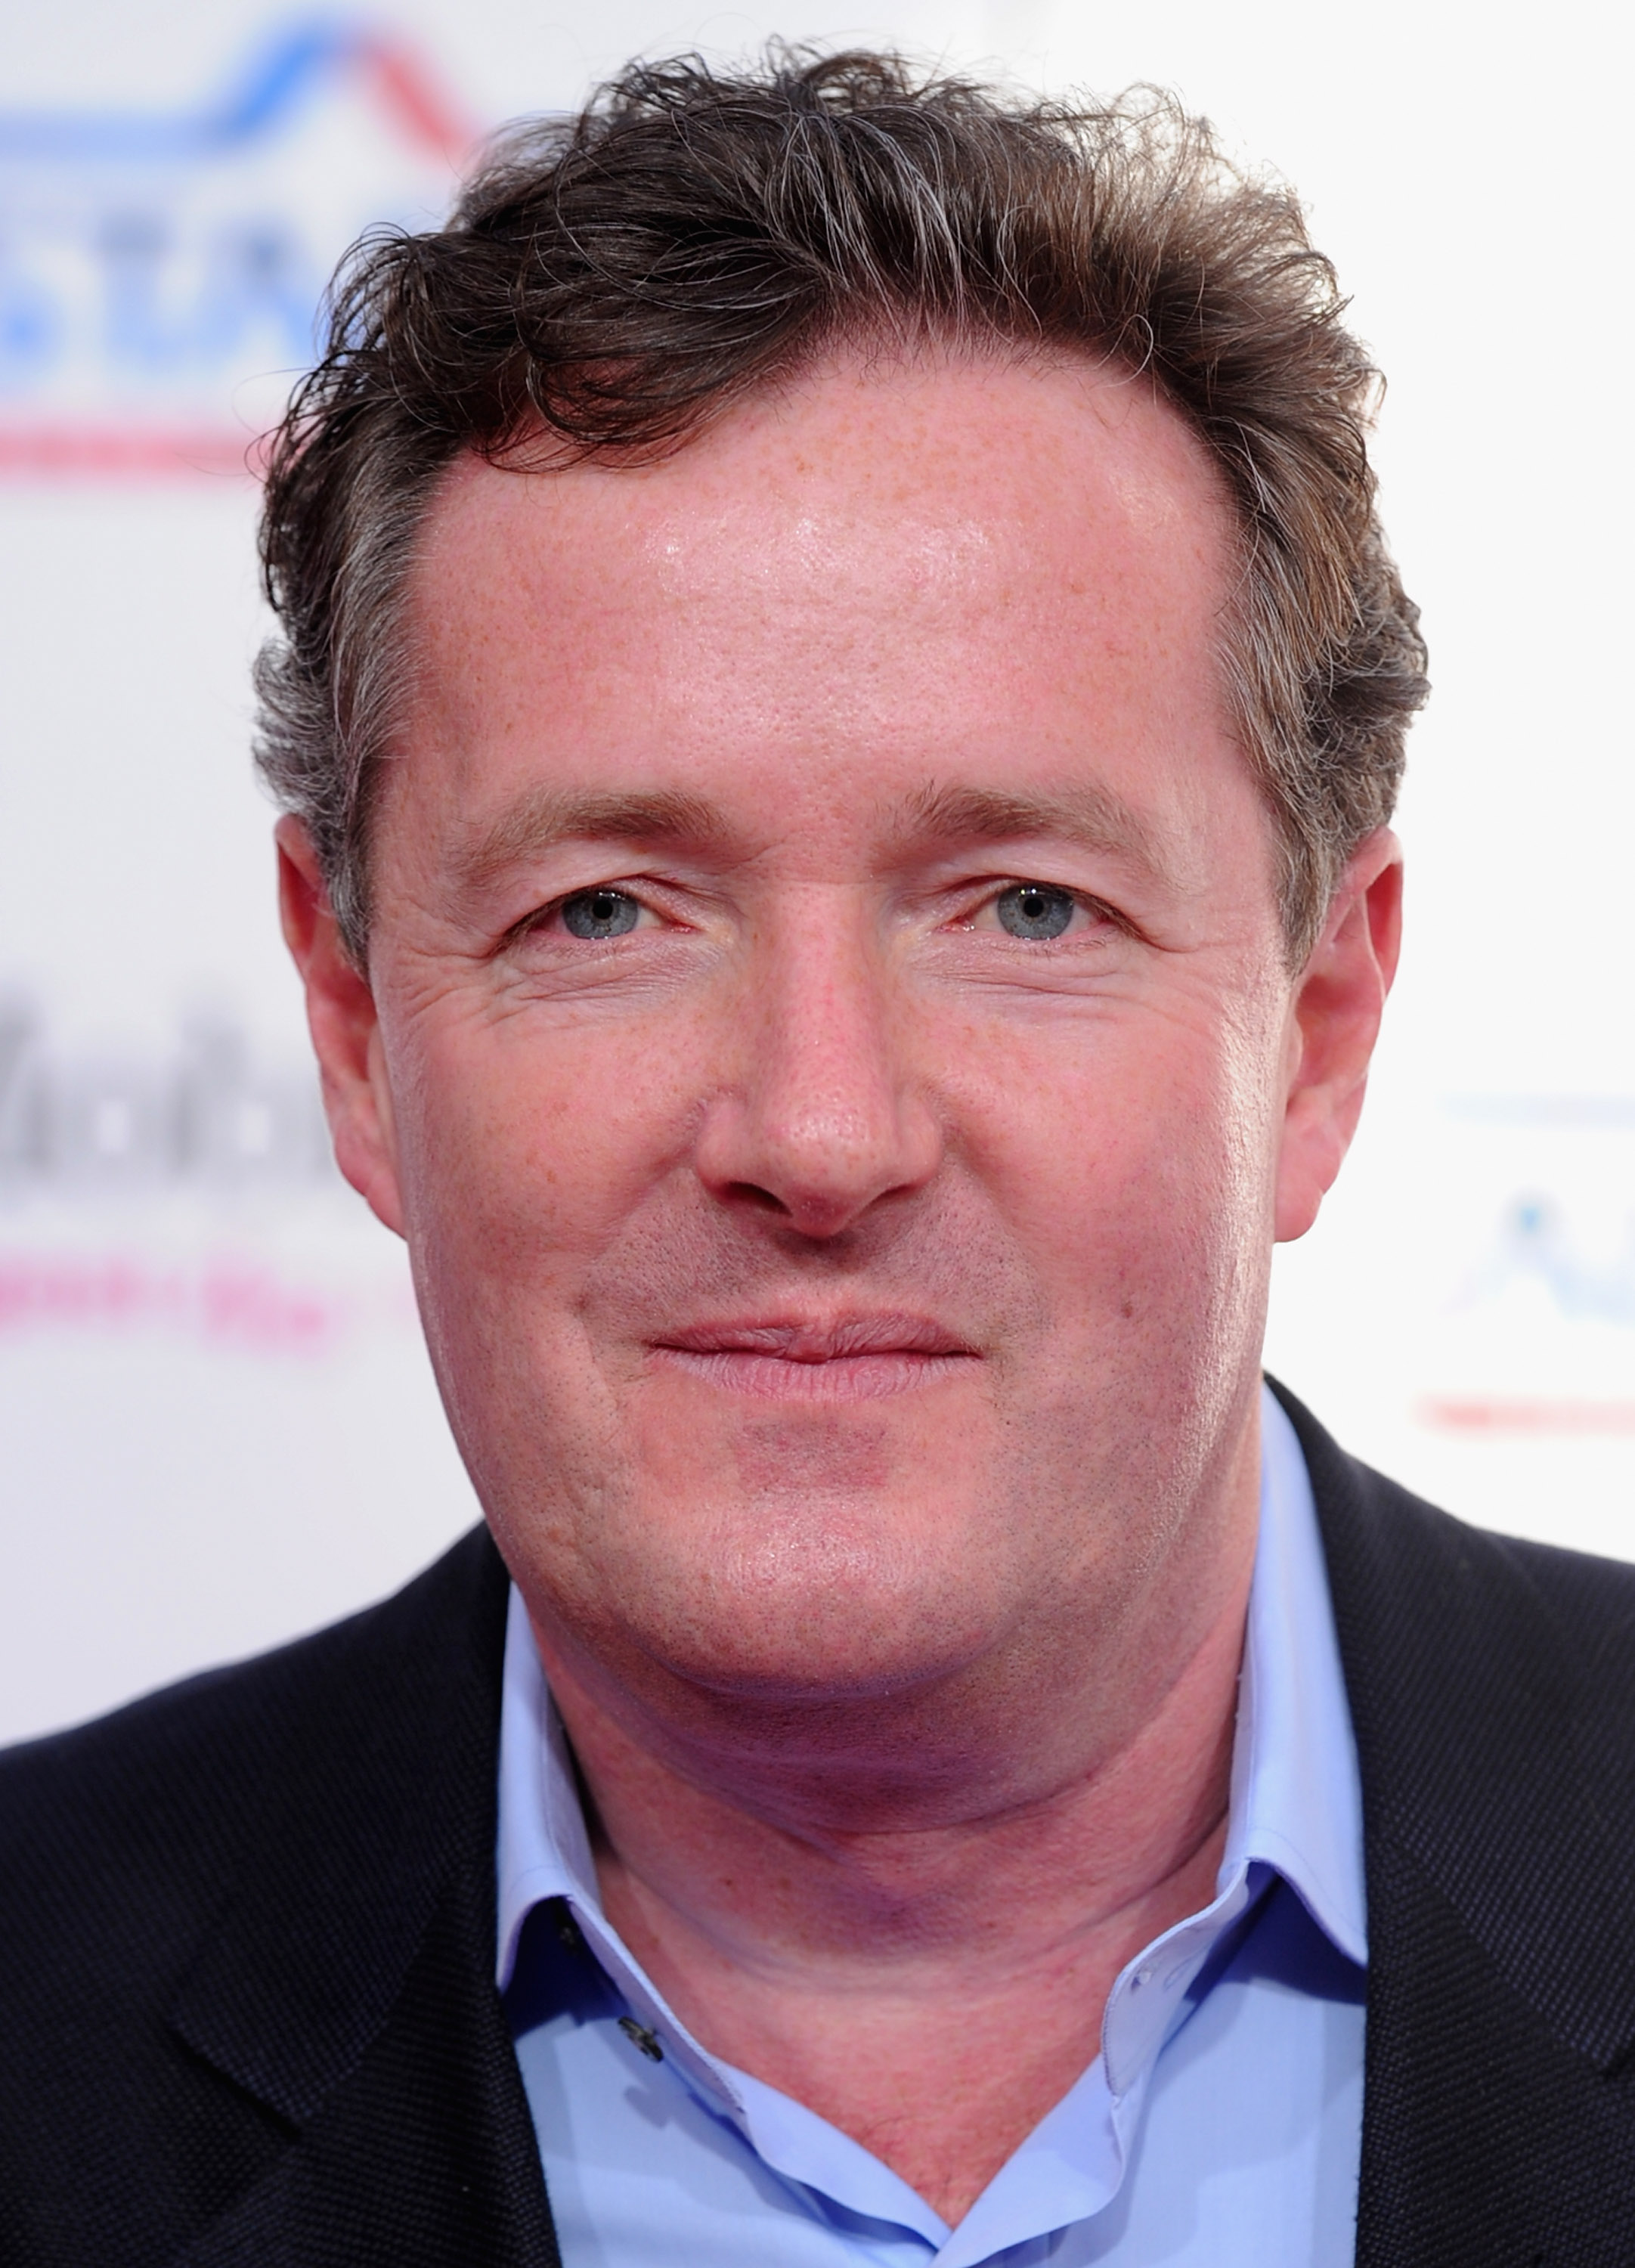 TV host Piers Morgan (Source: Getty Images)